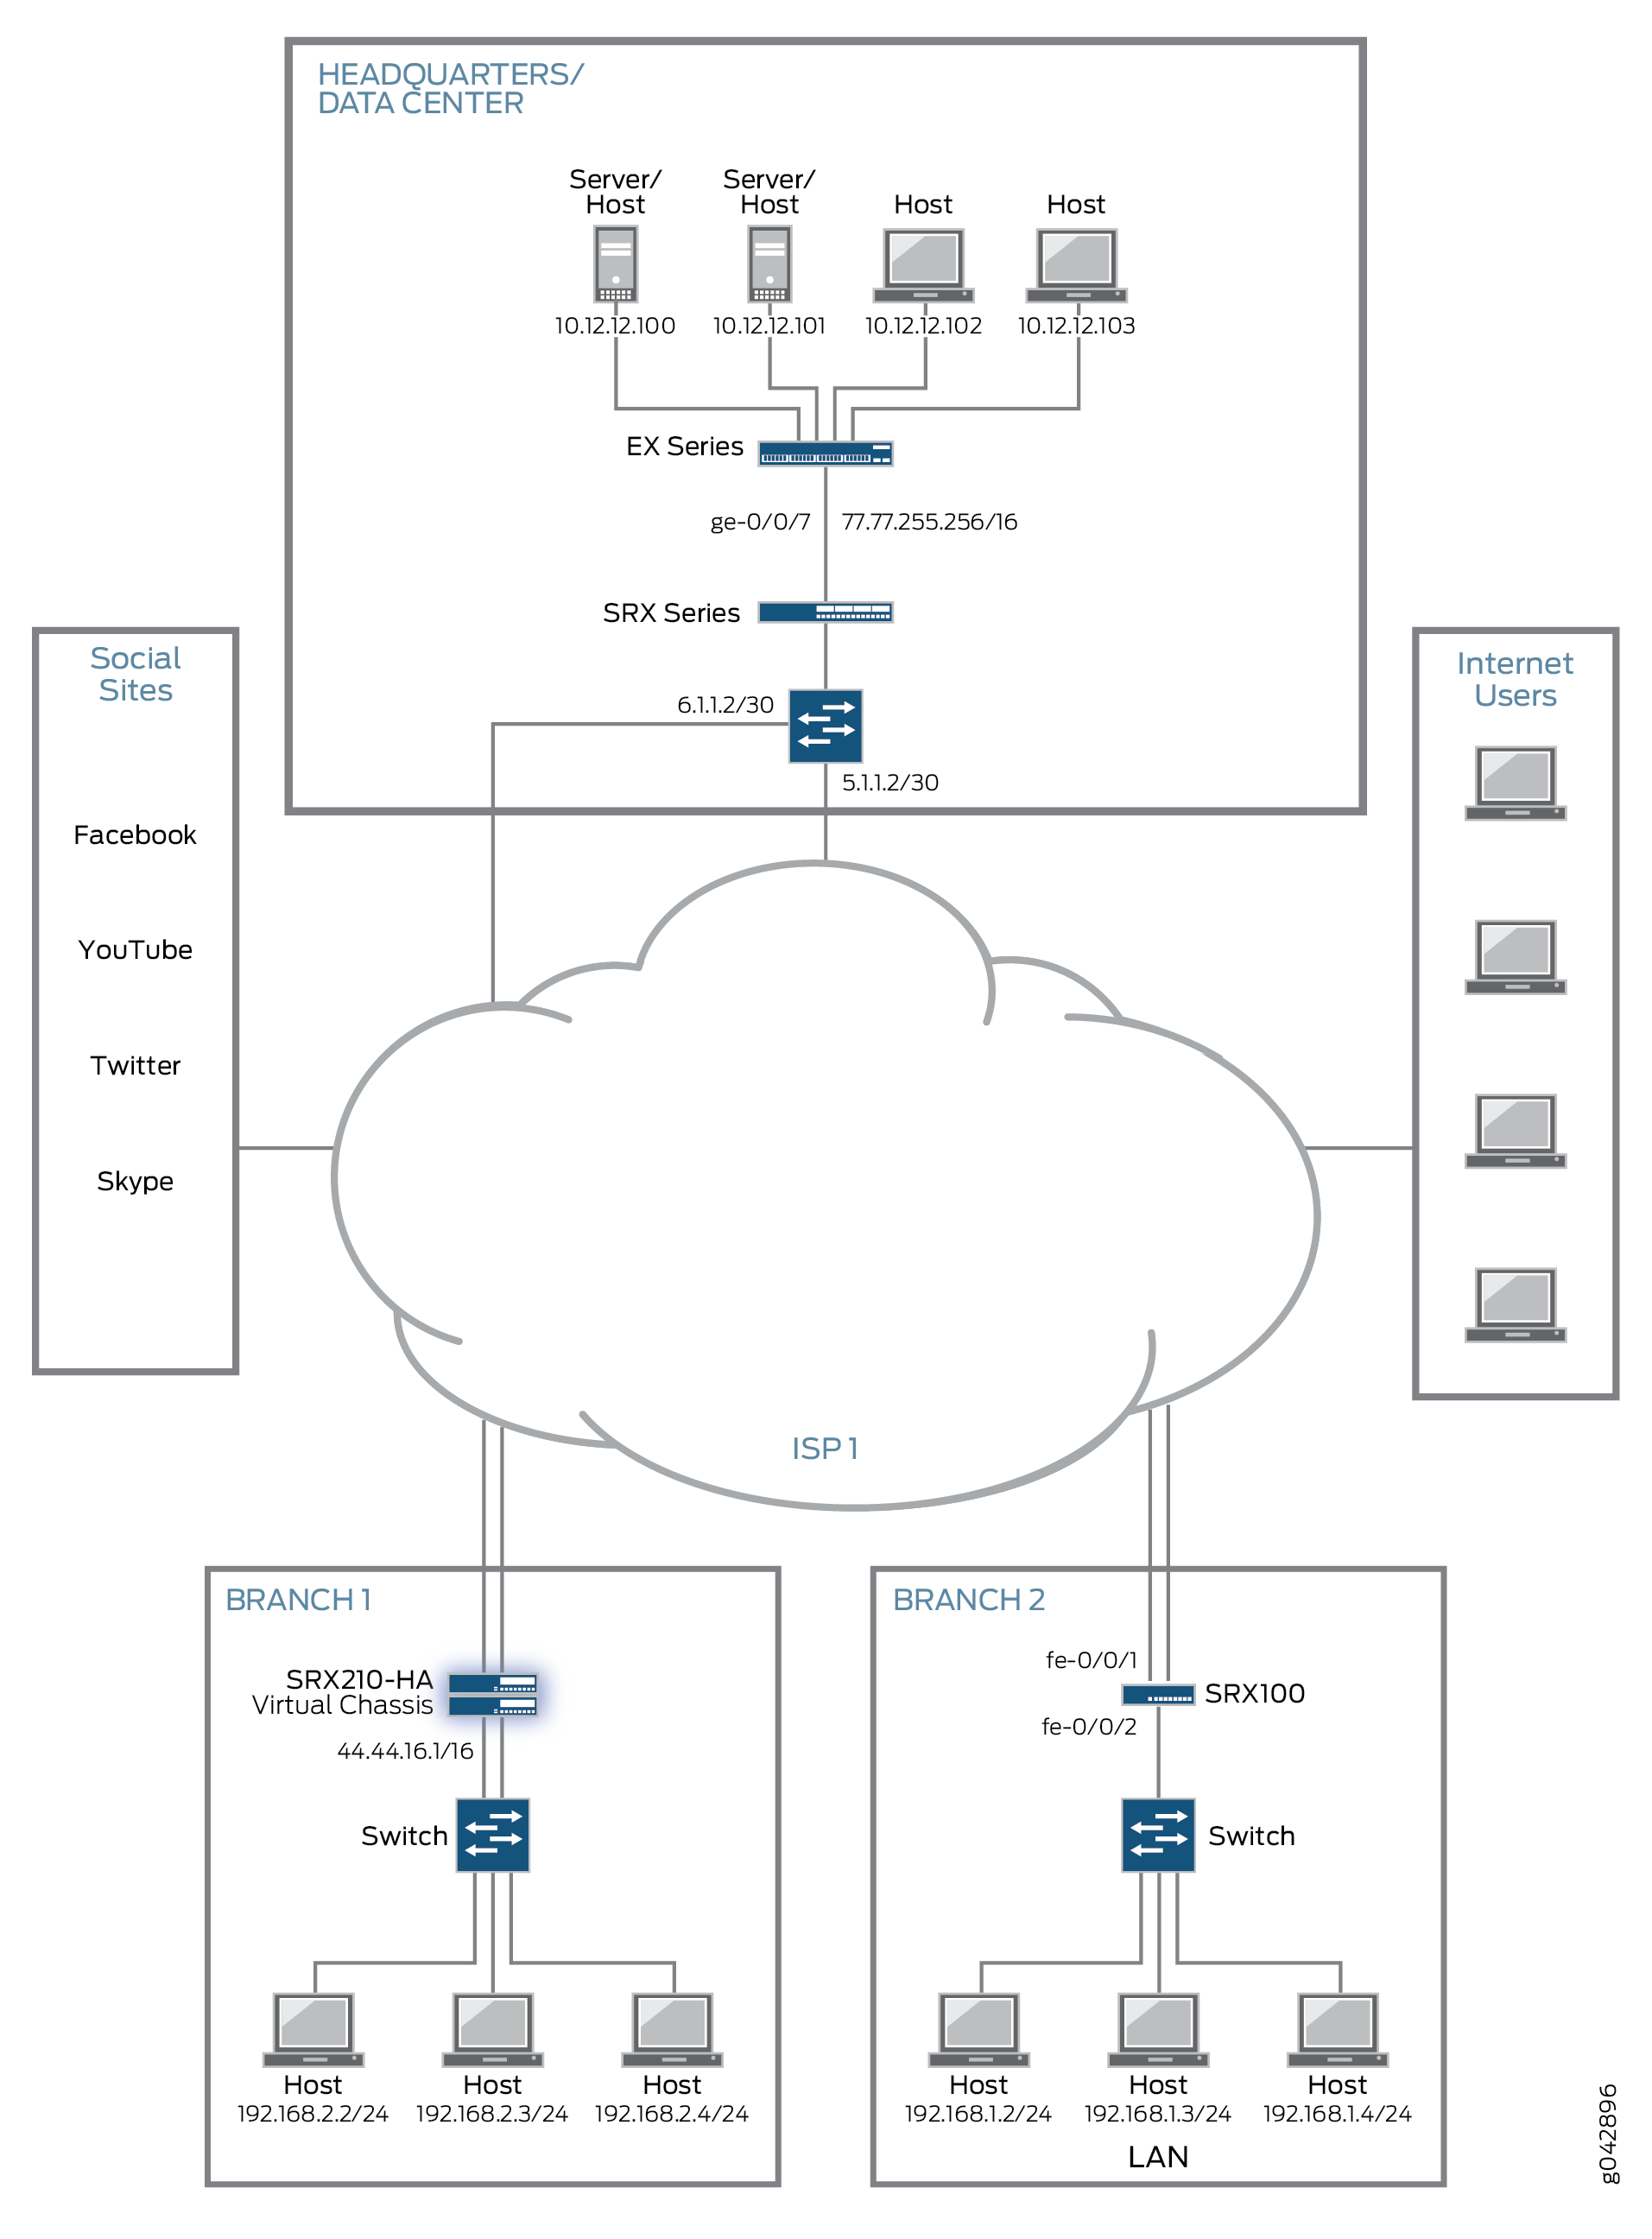 Example: Configuring a Next-Generation Firewall on SRX